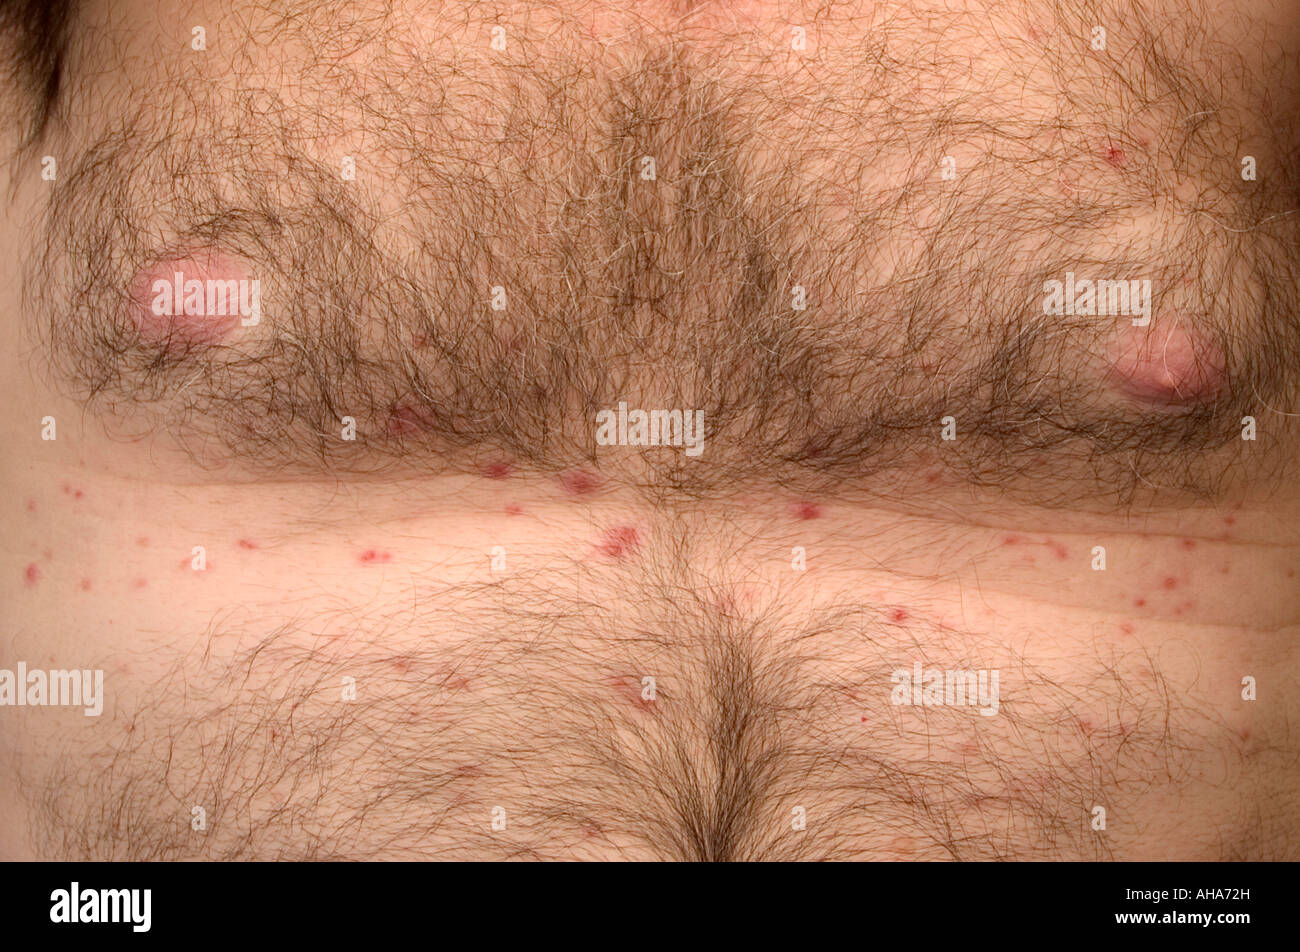 Grover S Disease Middle Aged Man S Chest Stock Photo